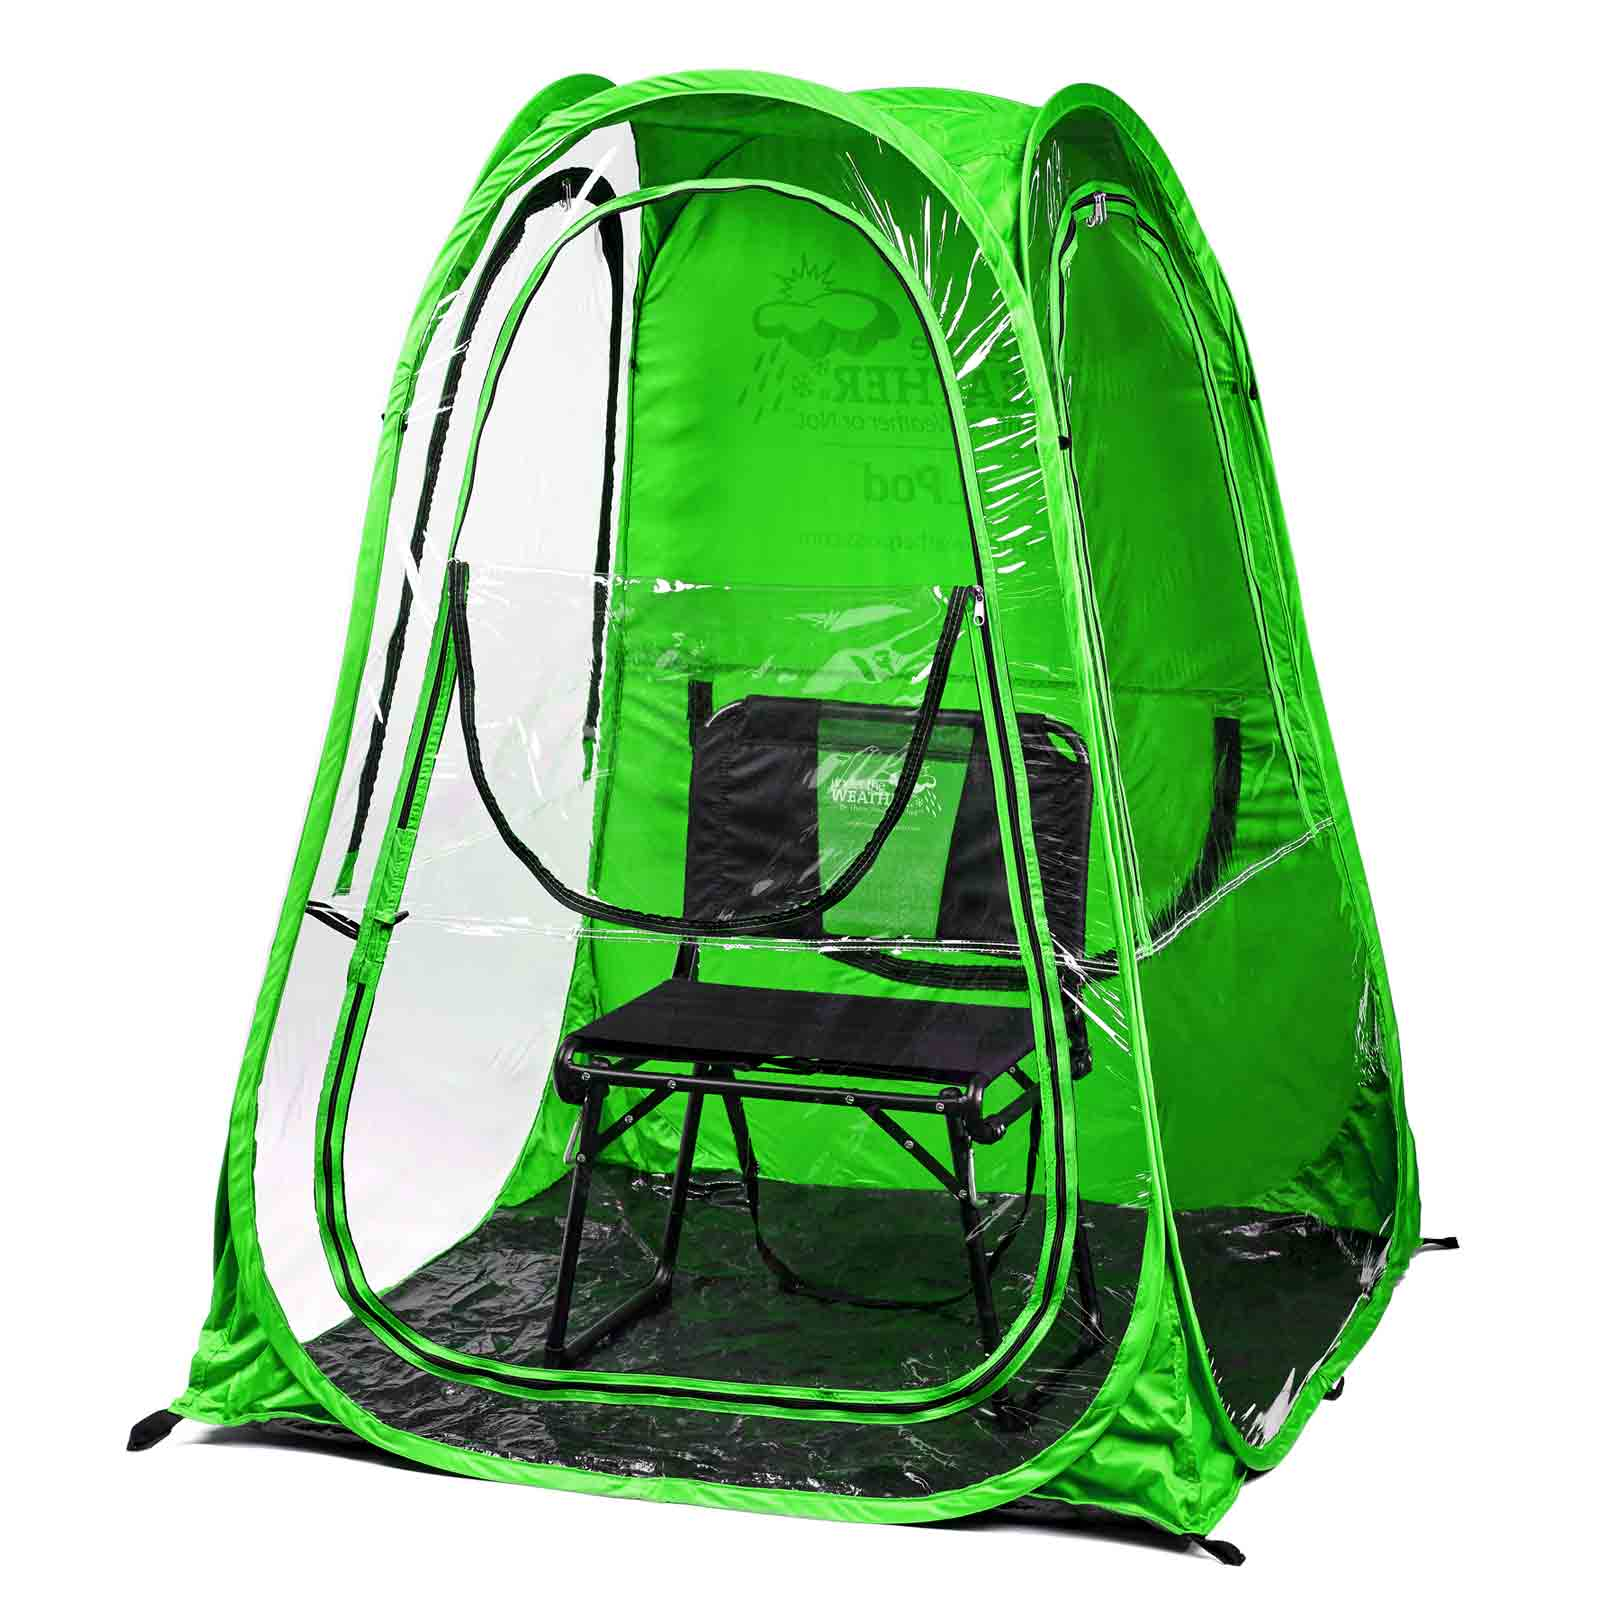 OriginalPod XL 1-Person Pop-up Tent - Under the Weather® - Personal pop-up sports tent for mom, dad, kids, parents - Perfect for soccer, baseball, softball, football, youth team sports - As Seen on Shark Tank